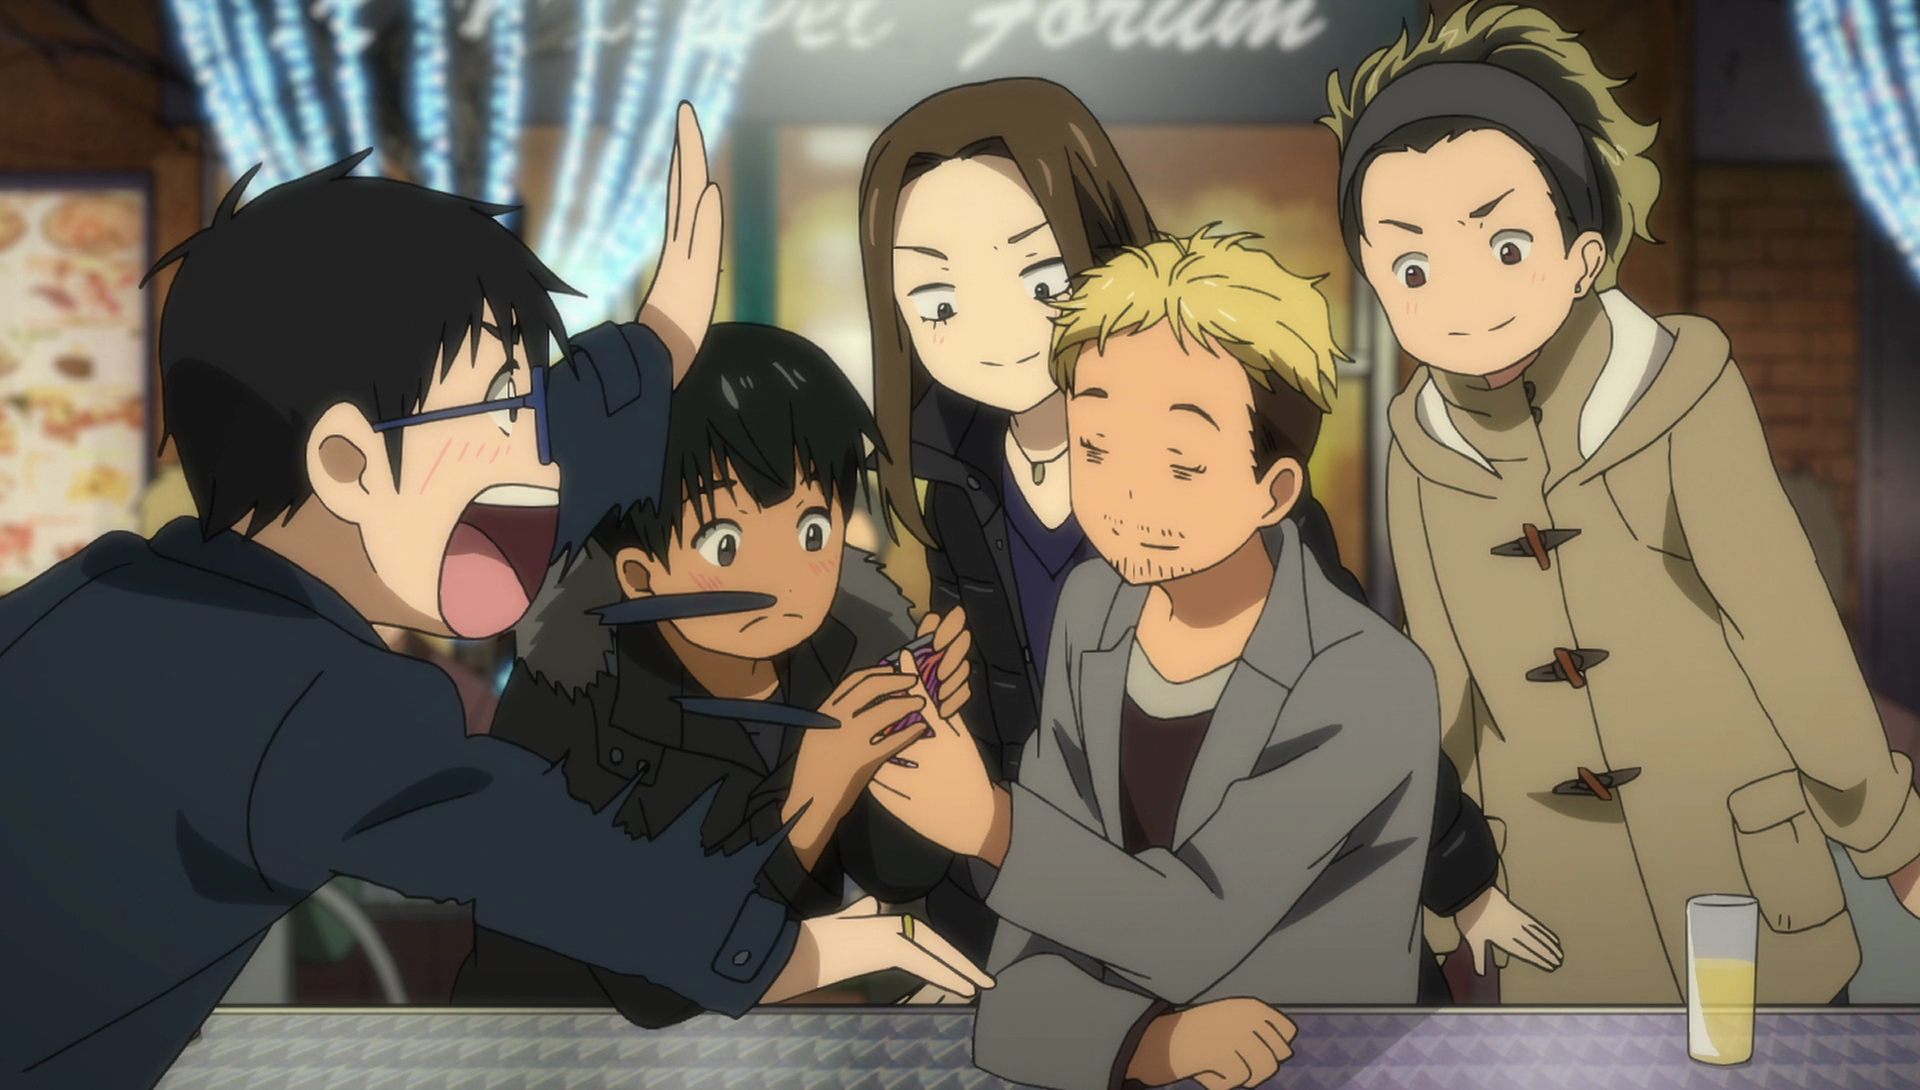 Talking about social media, this season's Yuri!!! on Ice heavily features Instagram <3